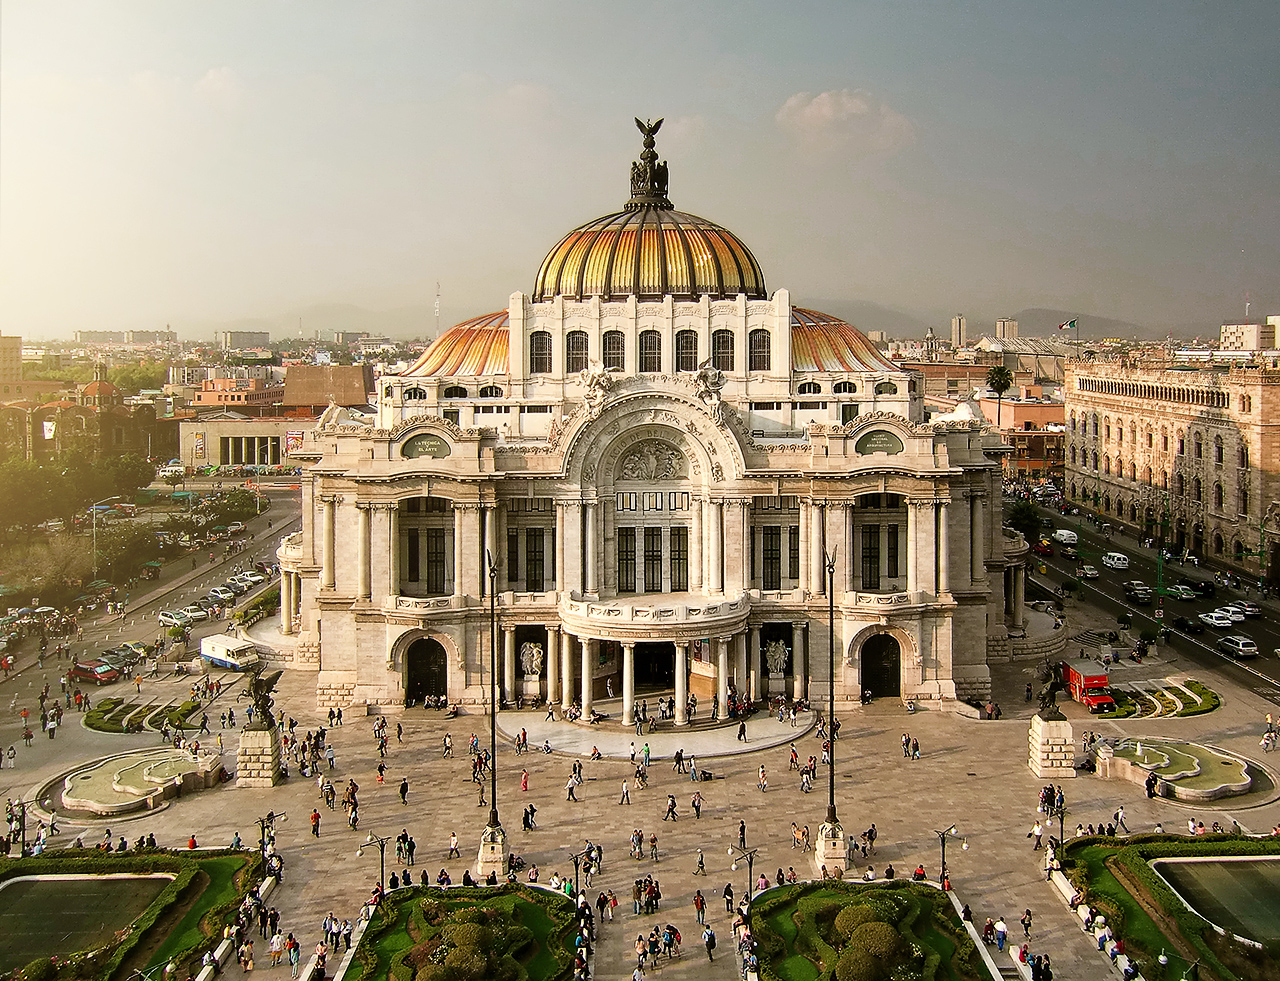 mexiko_city_bellas artes